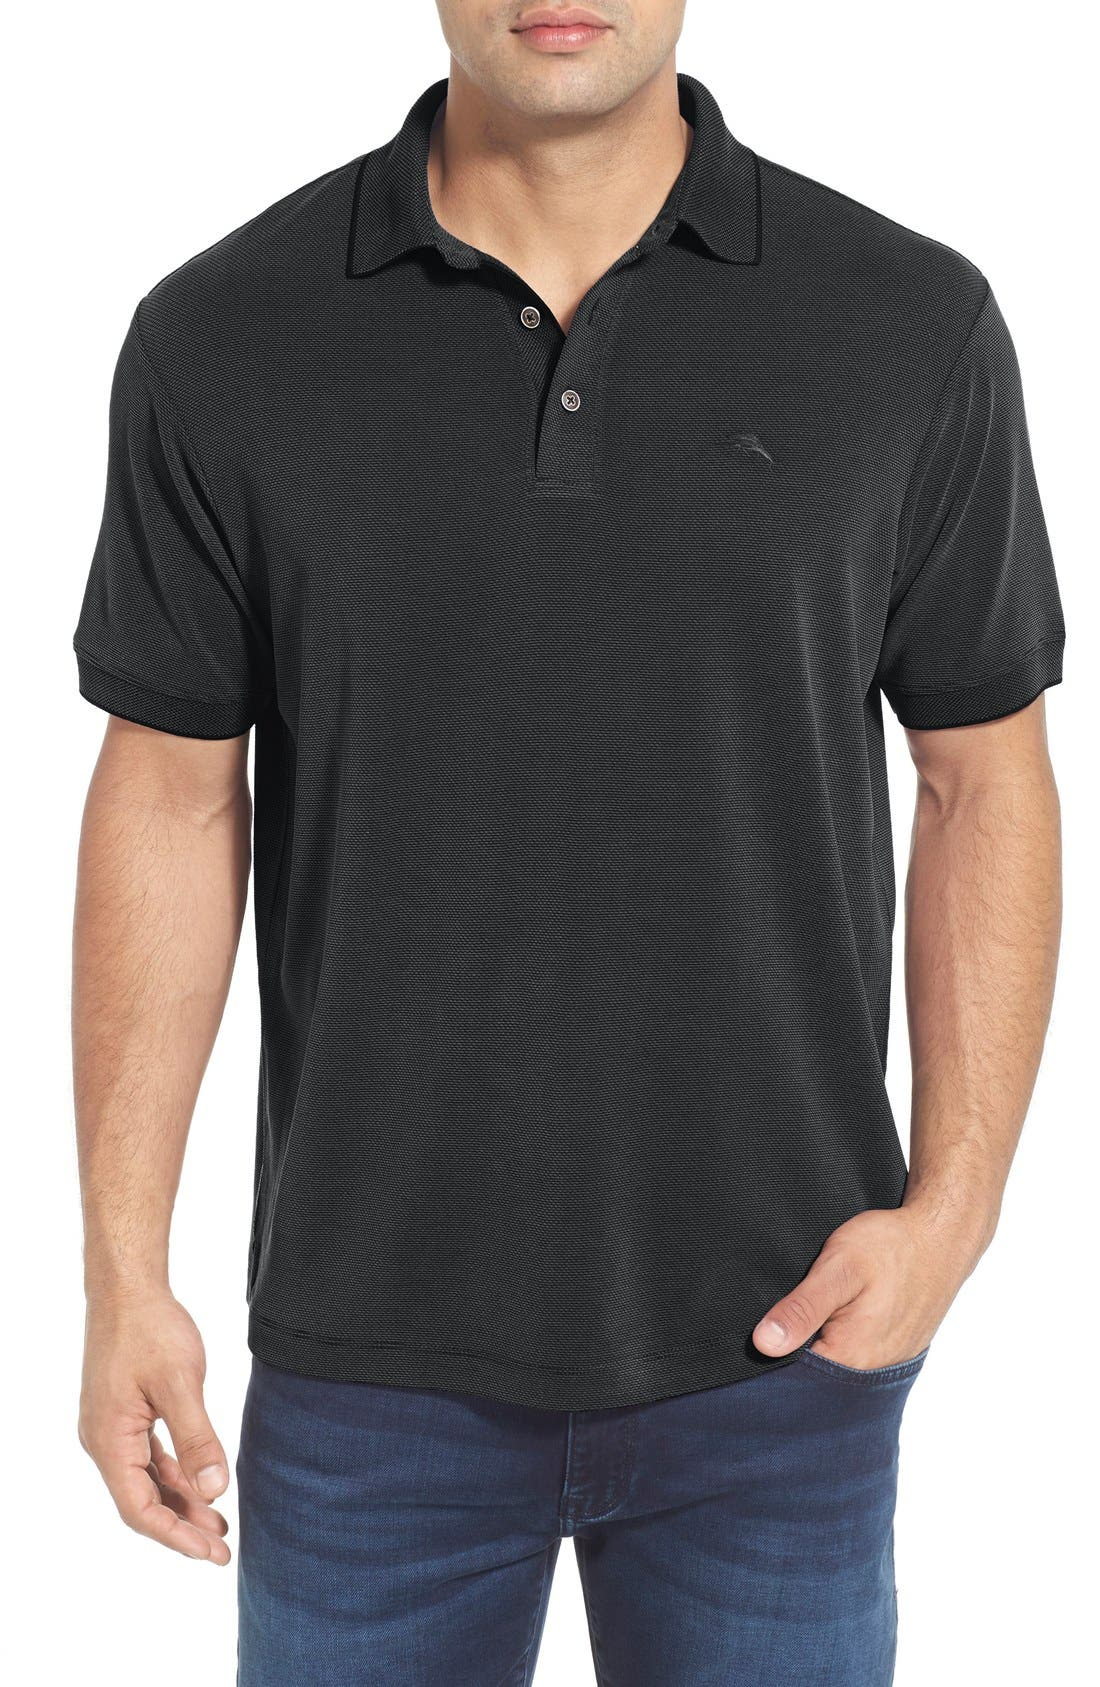 TOMMY BAHAMA 'New Pebble Shore' Short Sleeve Polo